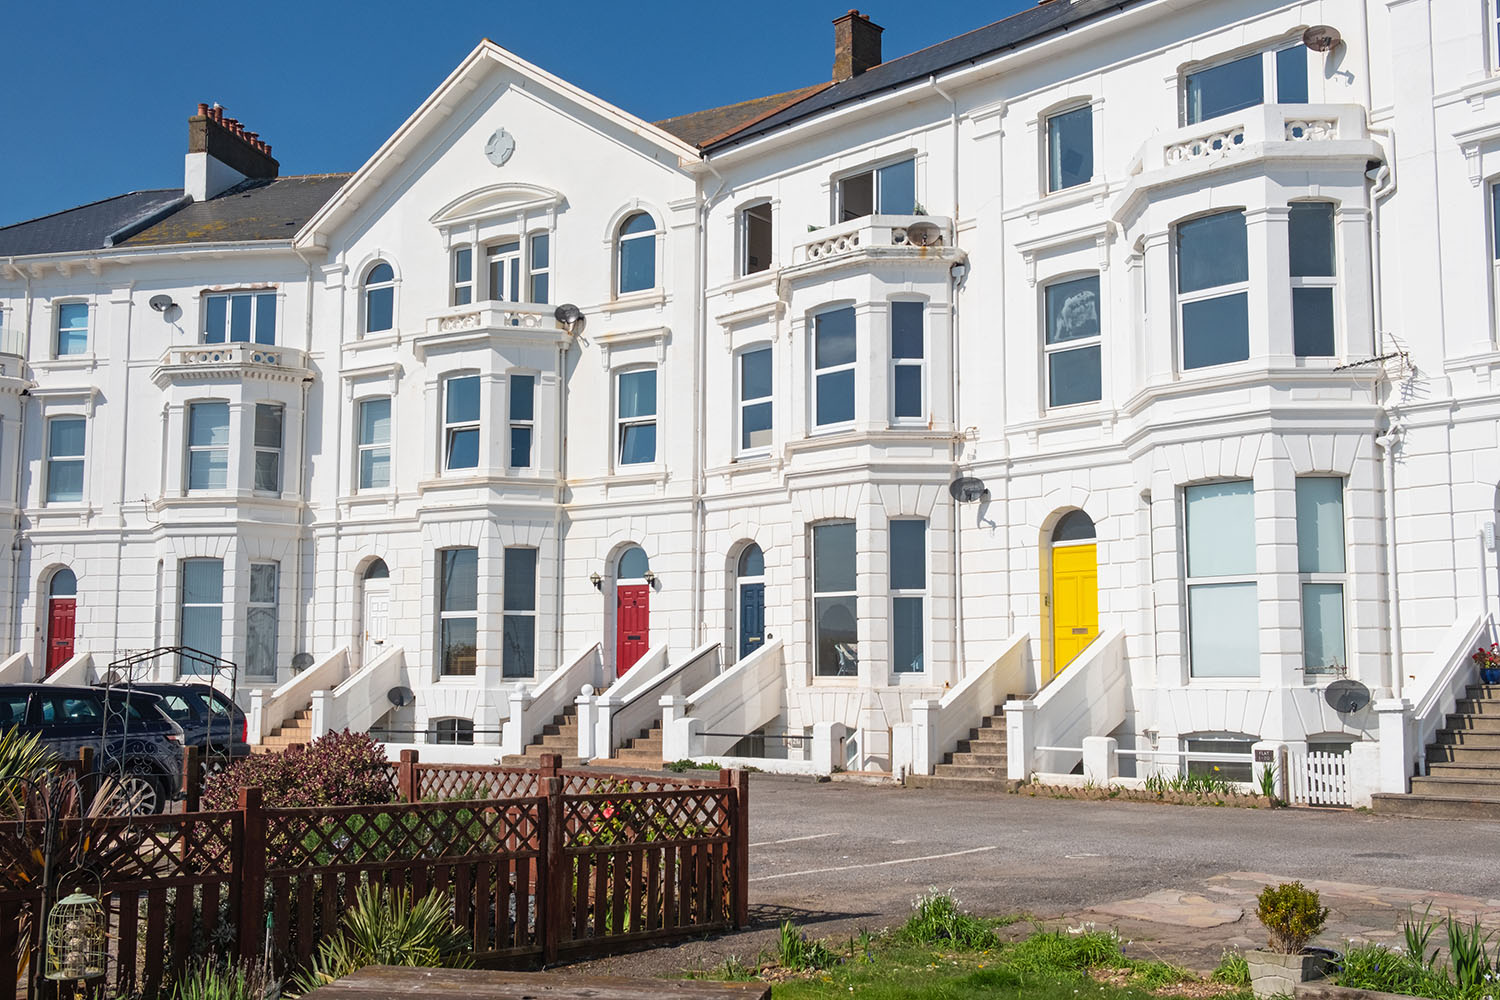 Typical seaside terraced housing in southern England